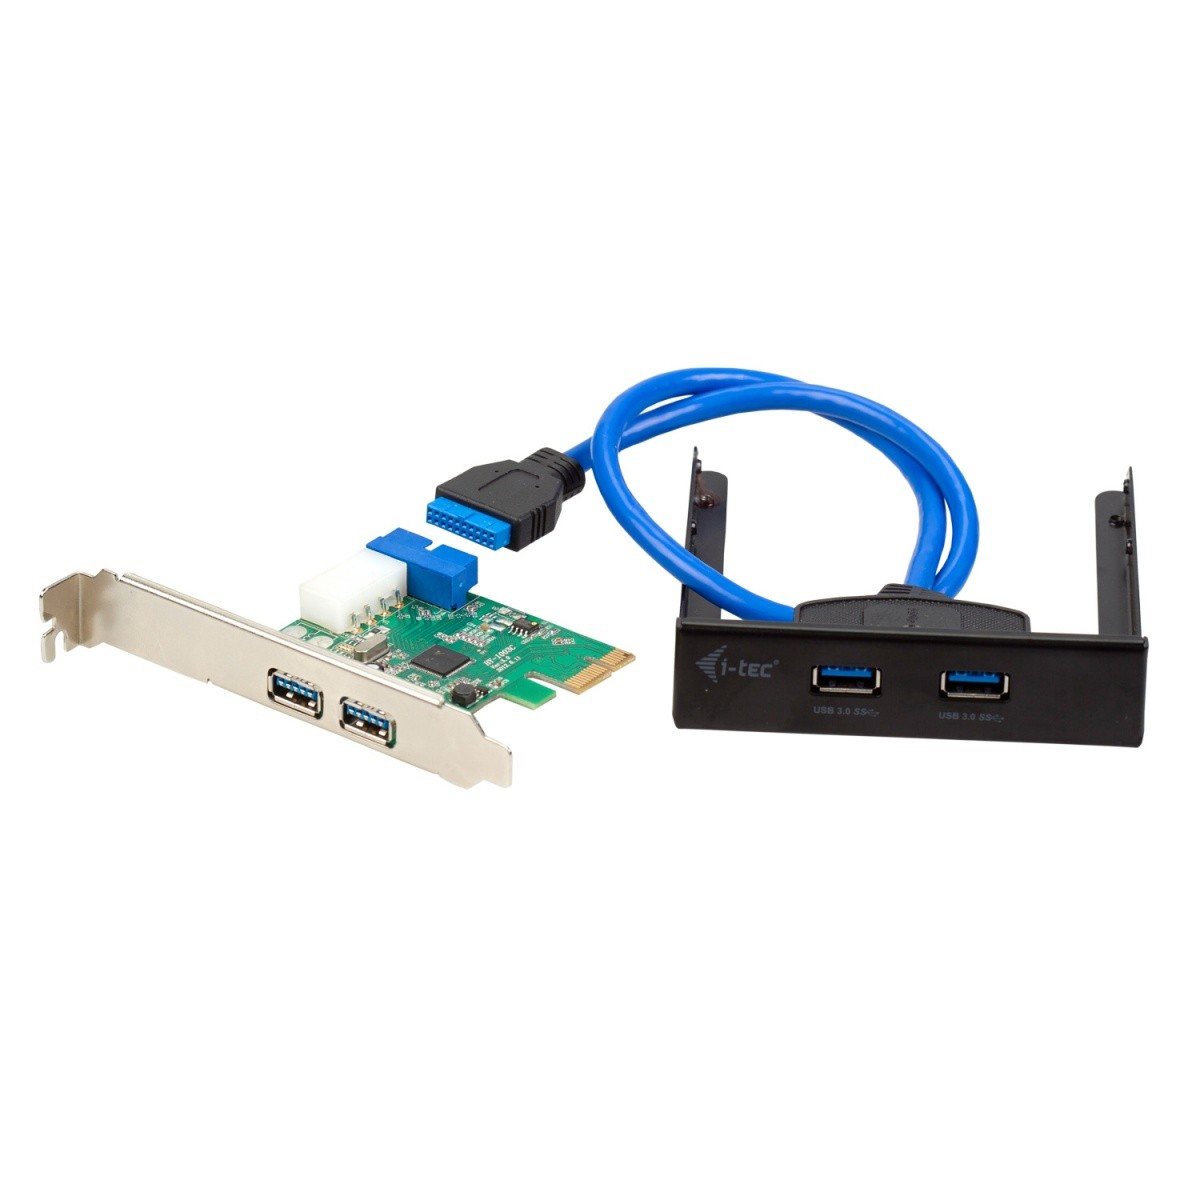 USB 3.0 Extension kit zestaw karta PCI Express 4 x USB